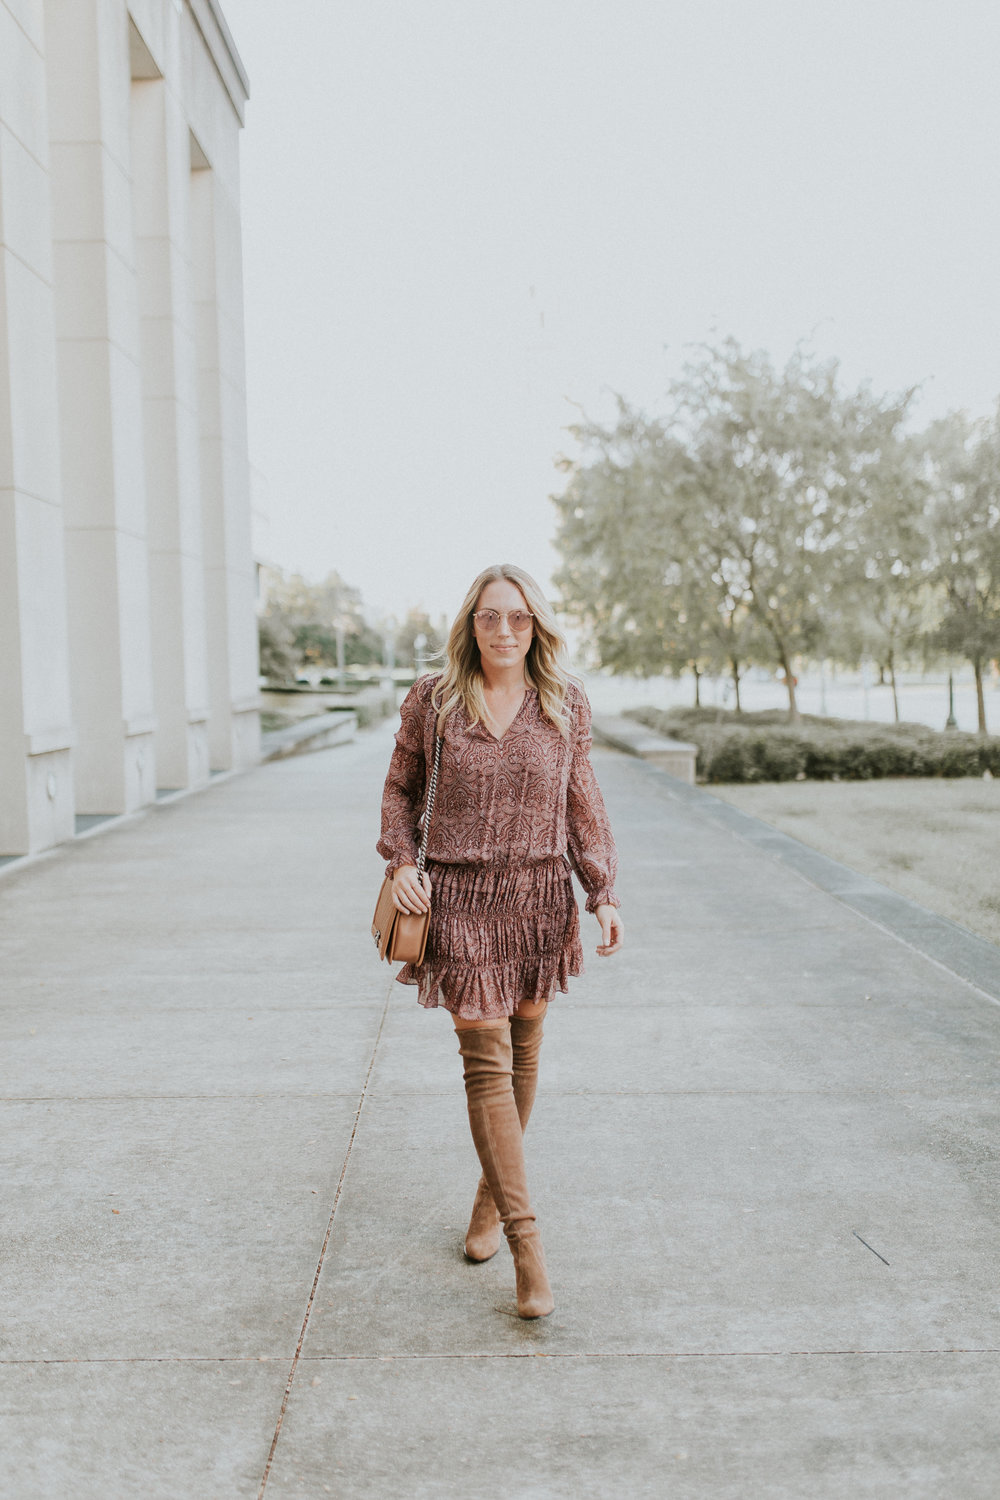 Blogger Gracefully Taylored in Joie Dress and Stuart Weitzman Boots17).jpg